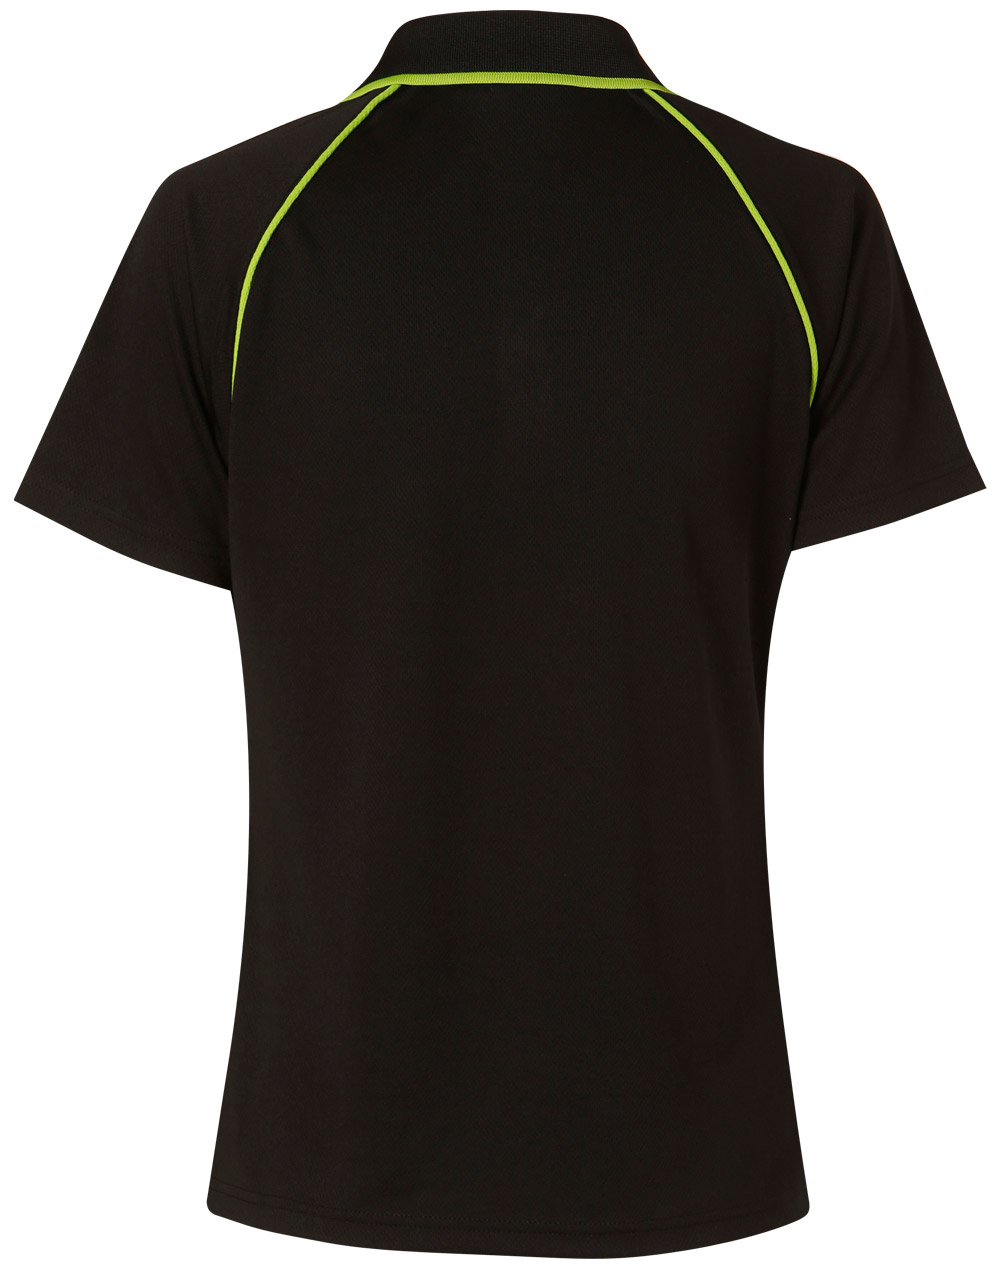 https://s3-ap-southeast-1.amazonaws.com/ws-imgs/POLOSHIRTS/PS19_Black.Lime_Back.jpg